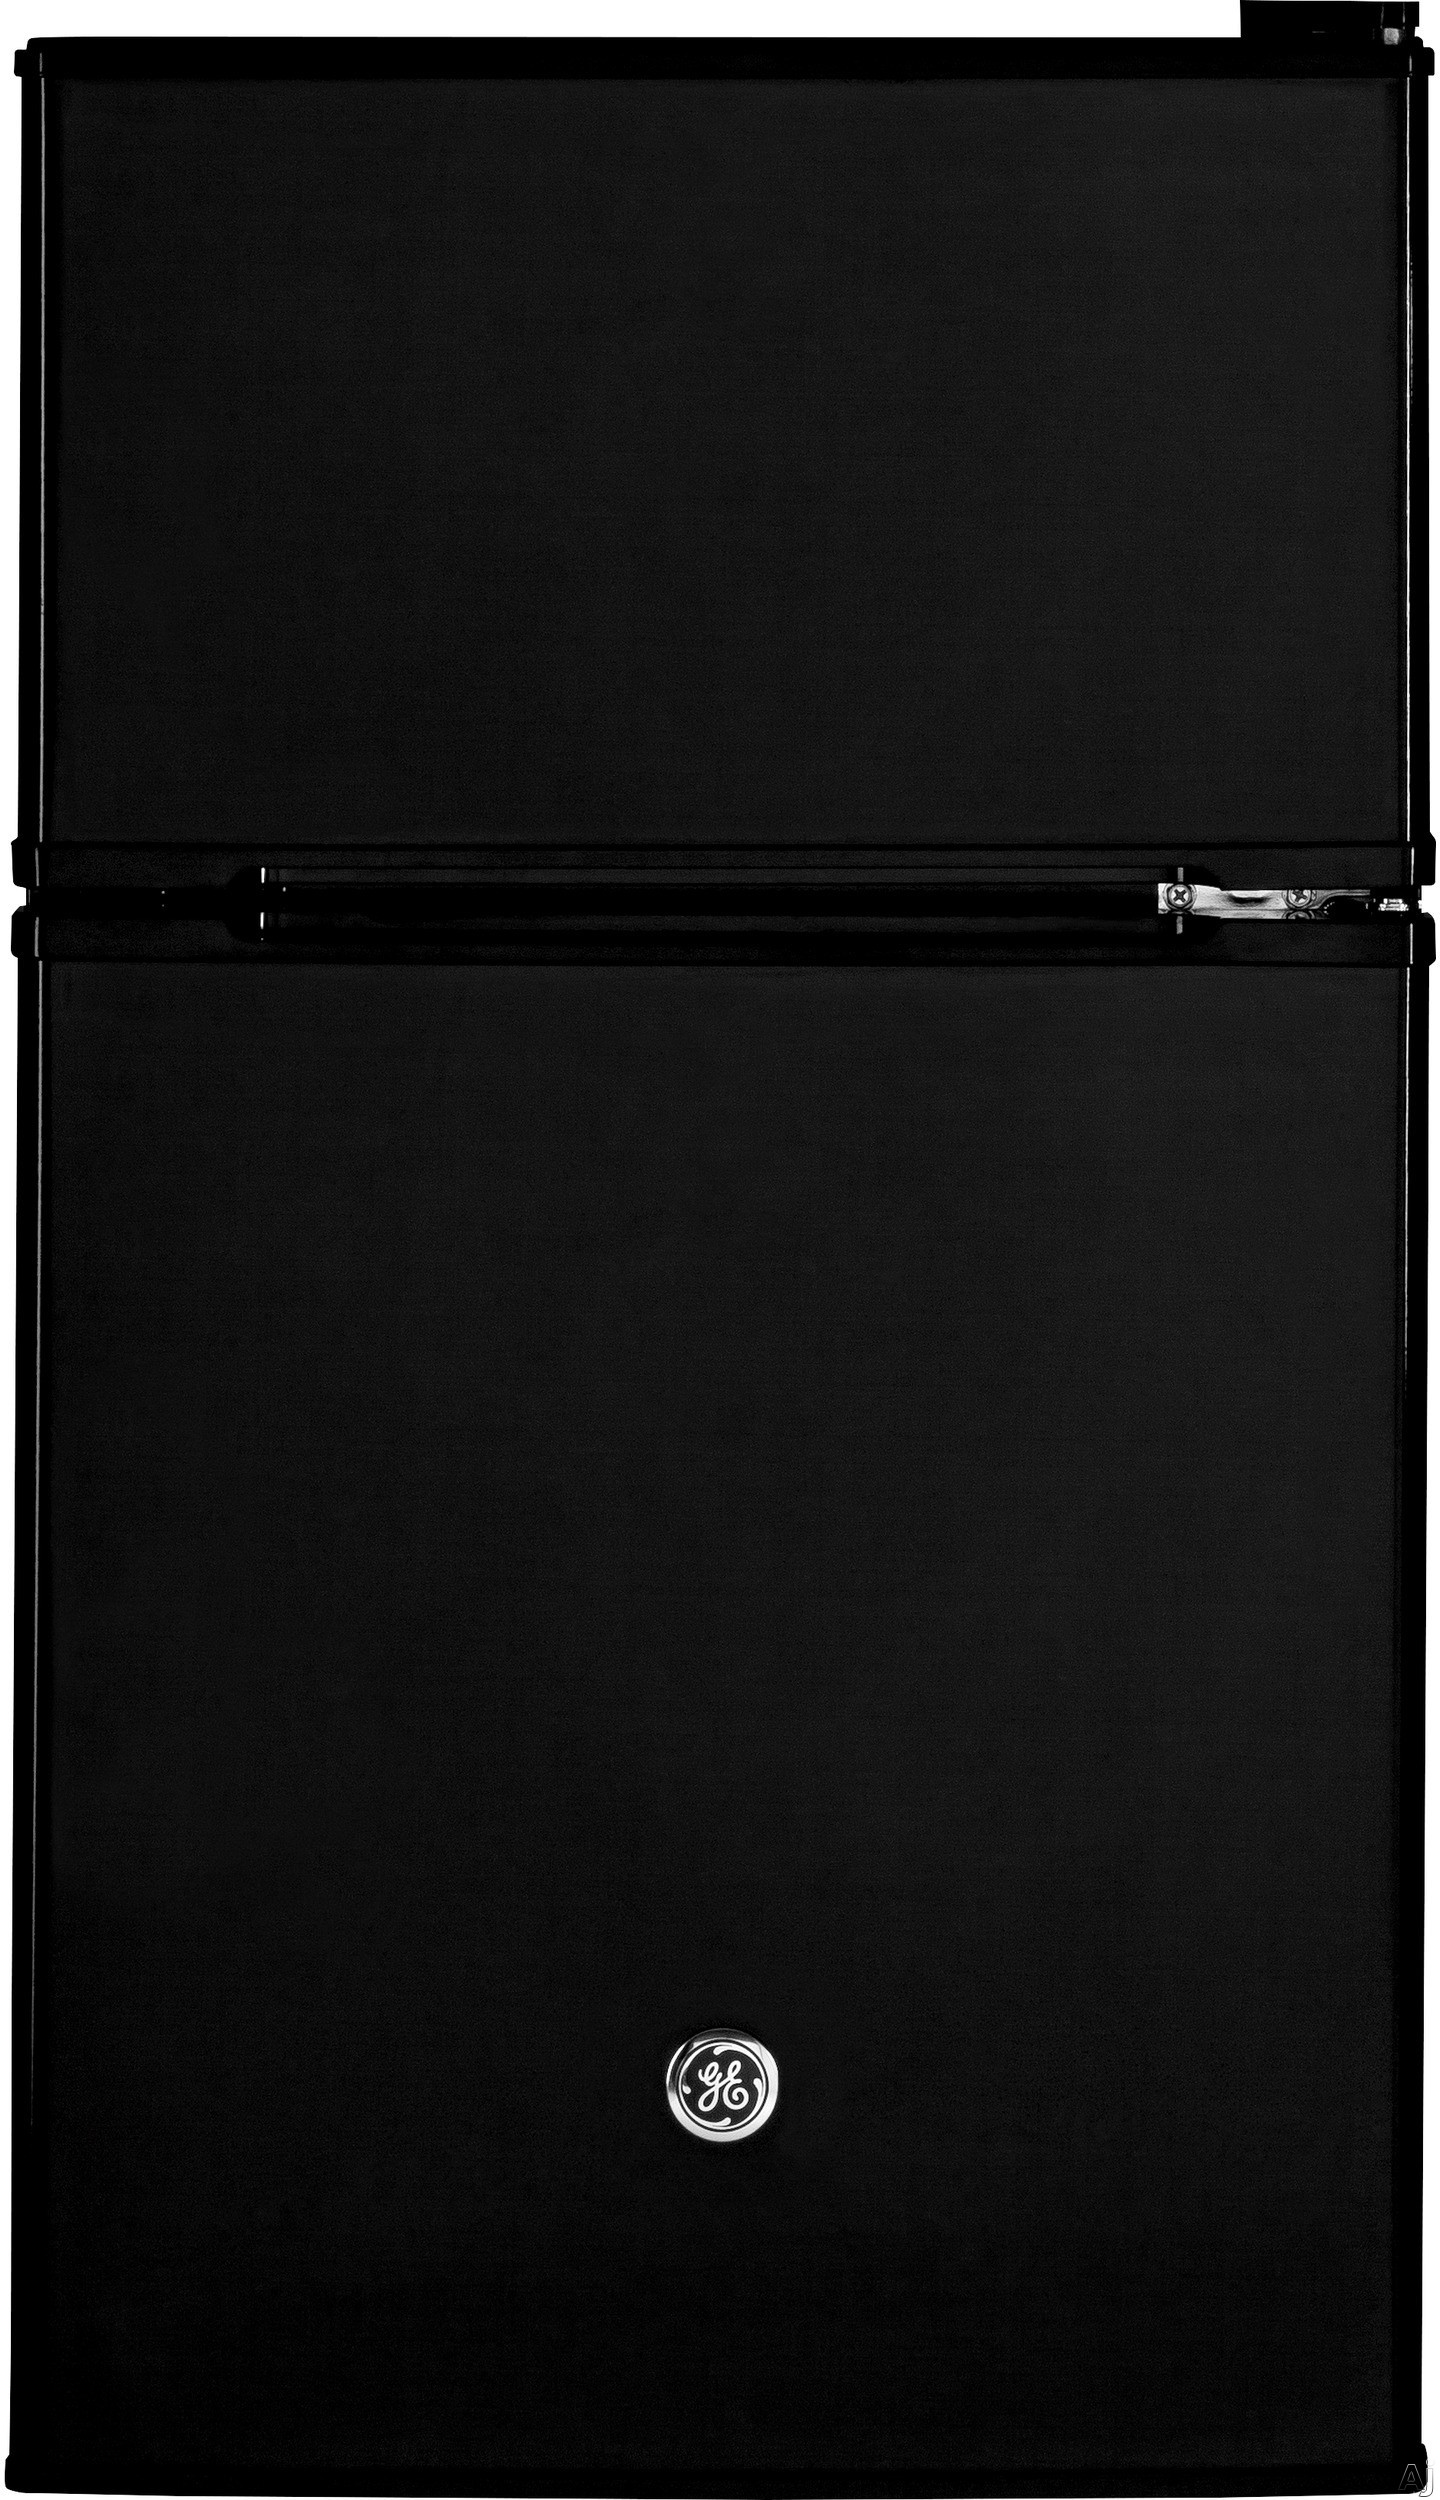 GE GDE03GGKBB 19 Inch Top Freezer Compact Refrigerator with 2 Glass Shelves, Storage Drawer, 2 Door Bins, Beverage Can Door Bin, Freezer Door Bin, ENERGY STAR and Mini Ice Cube Tray: Black